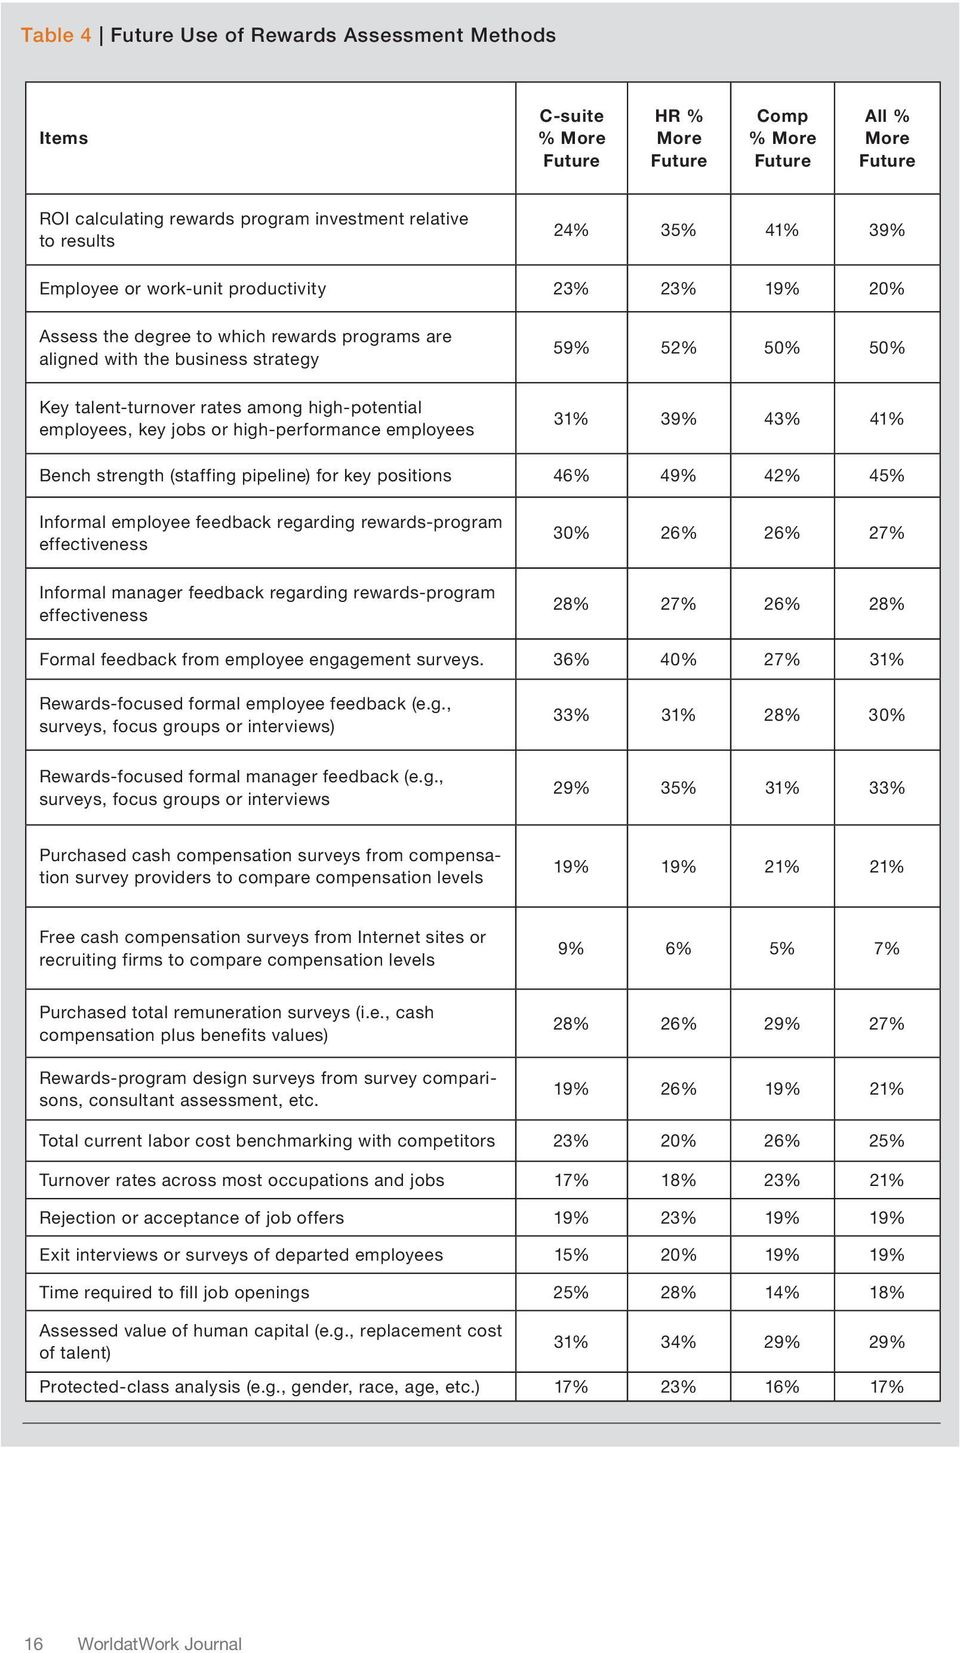 high-potential employees, key jobs or high-performance employees 31% 39% 43% 41% Bench strength (staffing pipeline) for key positions 46% 49% 42% 45% Informal employee feedback regarding